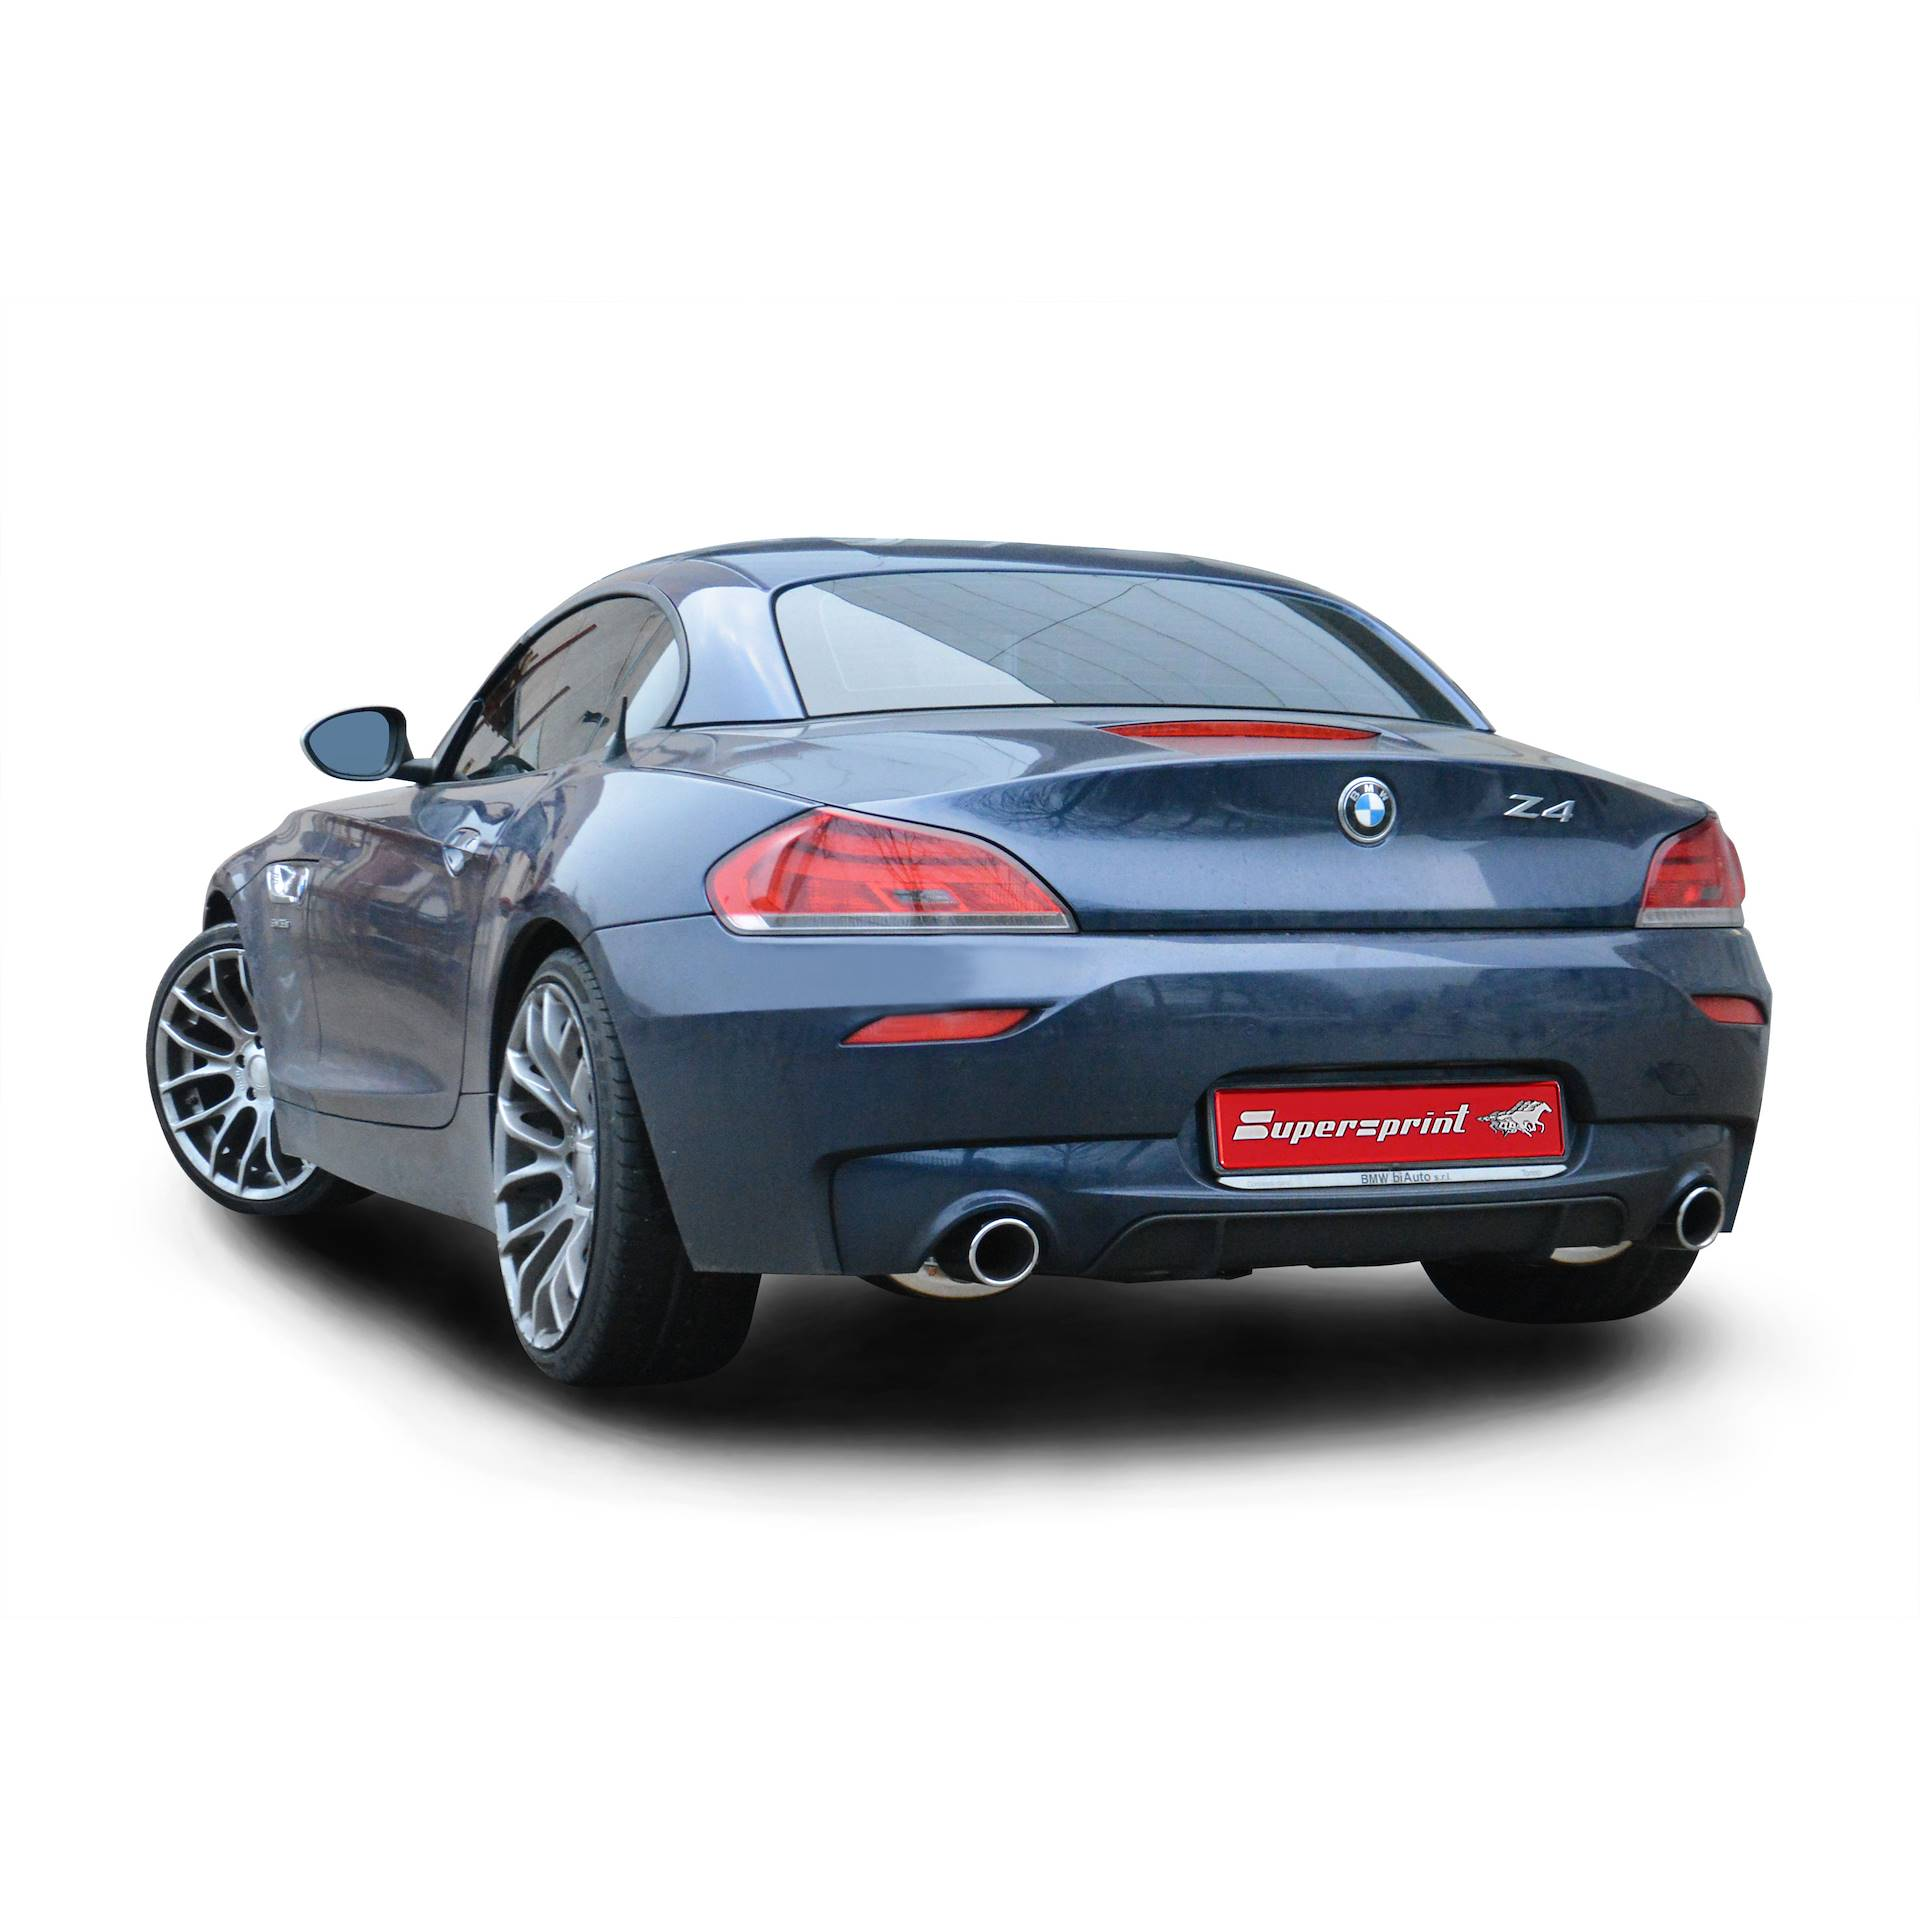 Bmw Z4 2009: BMW Z4 E89 35is SDrive Sound With Supersprint Exhaust